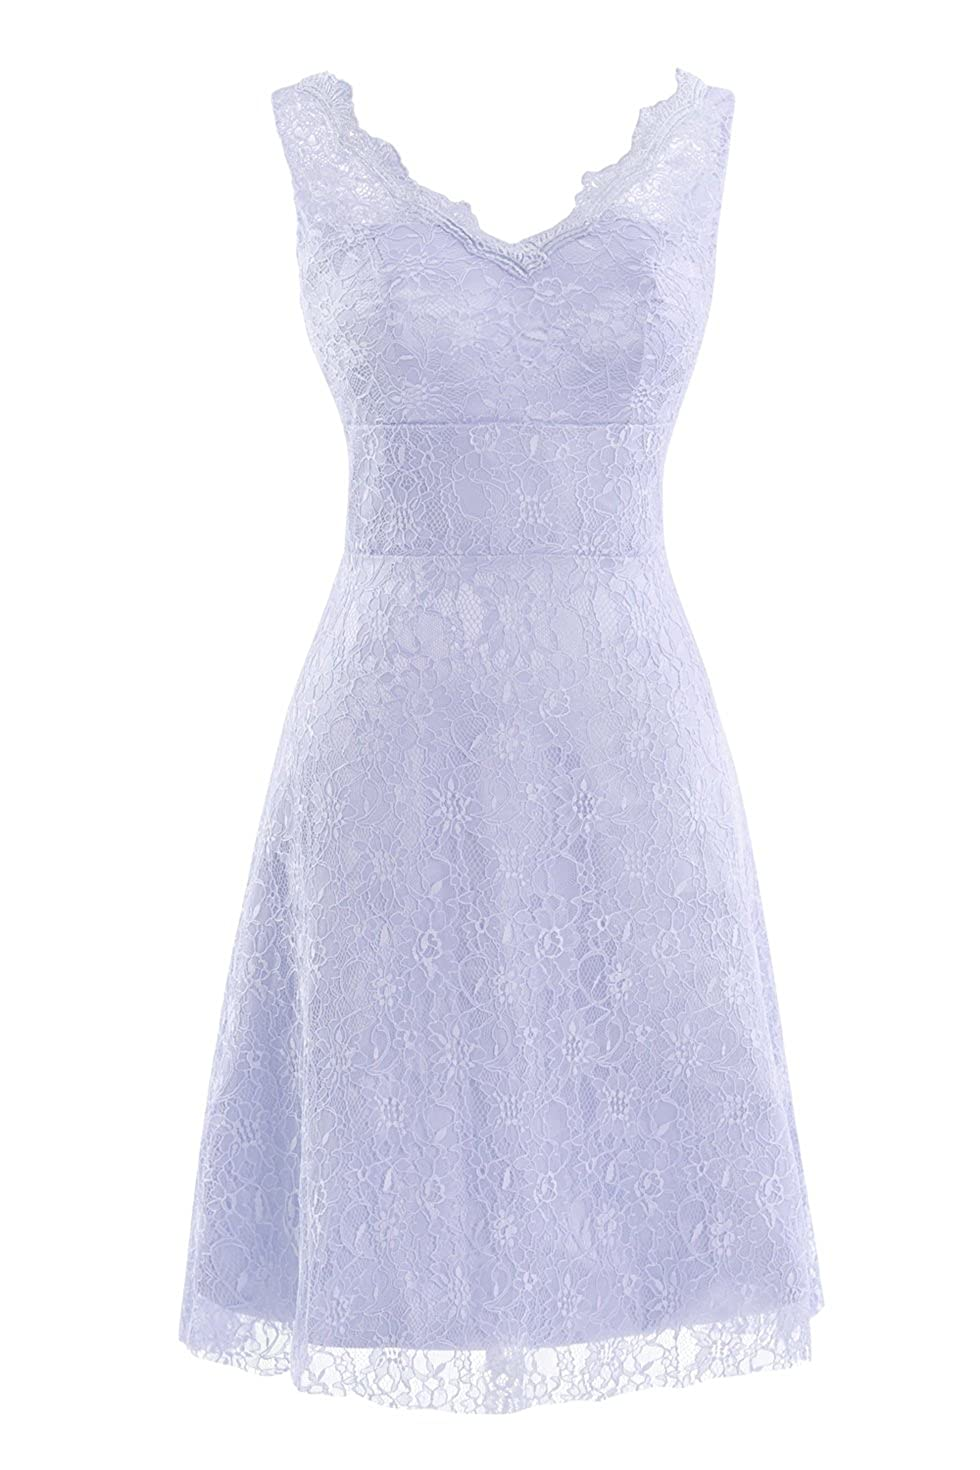 Lavender Bess Bridal Women's V Neck Lace Knee Length Prom Party Dresses